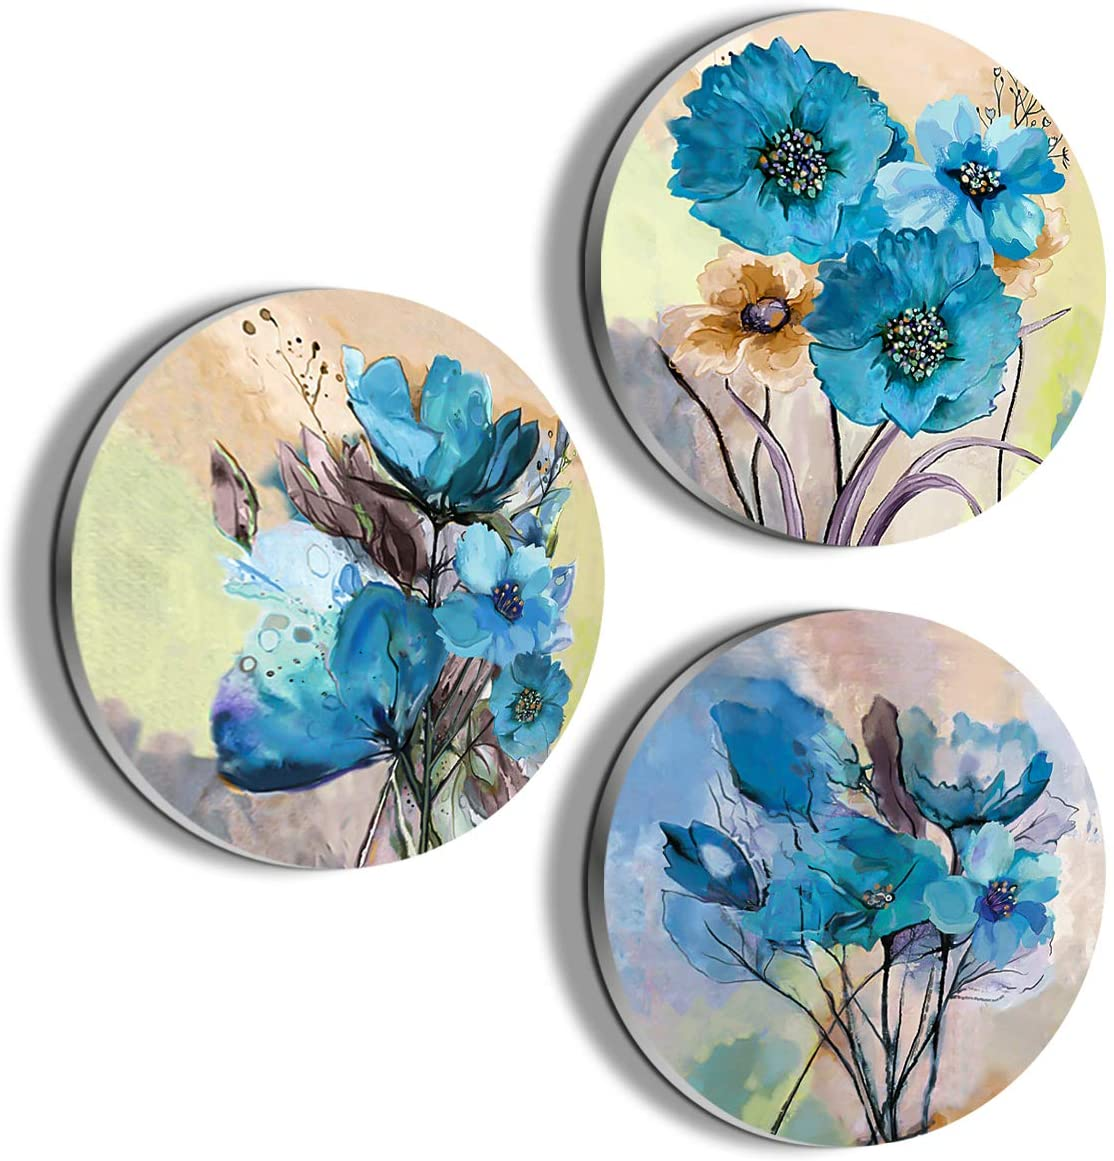 Wall art for dining room blue flower painting wall decor Oil Painting Canvas Prints for Home Decorations to Hang for Bathroom Bedroom Living Room Kitchen Wall Round Decor